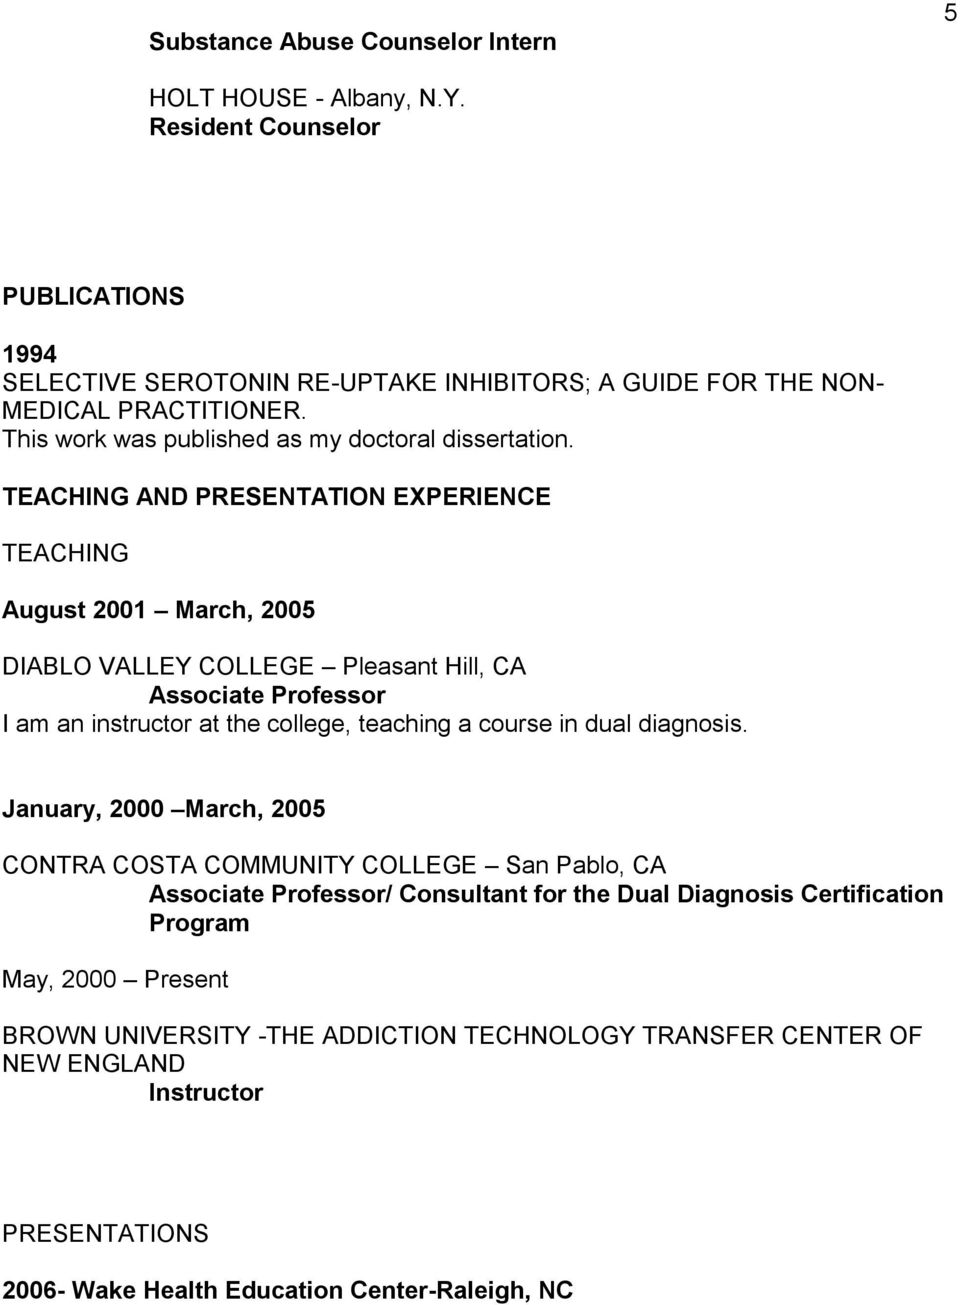 TEACHING AND PRESENTATION EXPERIENCE TEACHING August 2001 March, 2005 DIABLO VALLEY COLLEGE Pleasant Hill, CA Associate Professor I am an instructor at the college, teaching a course in